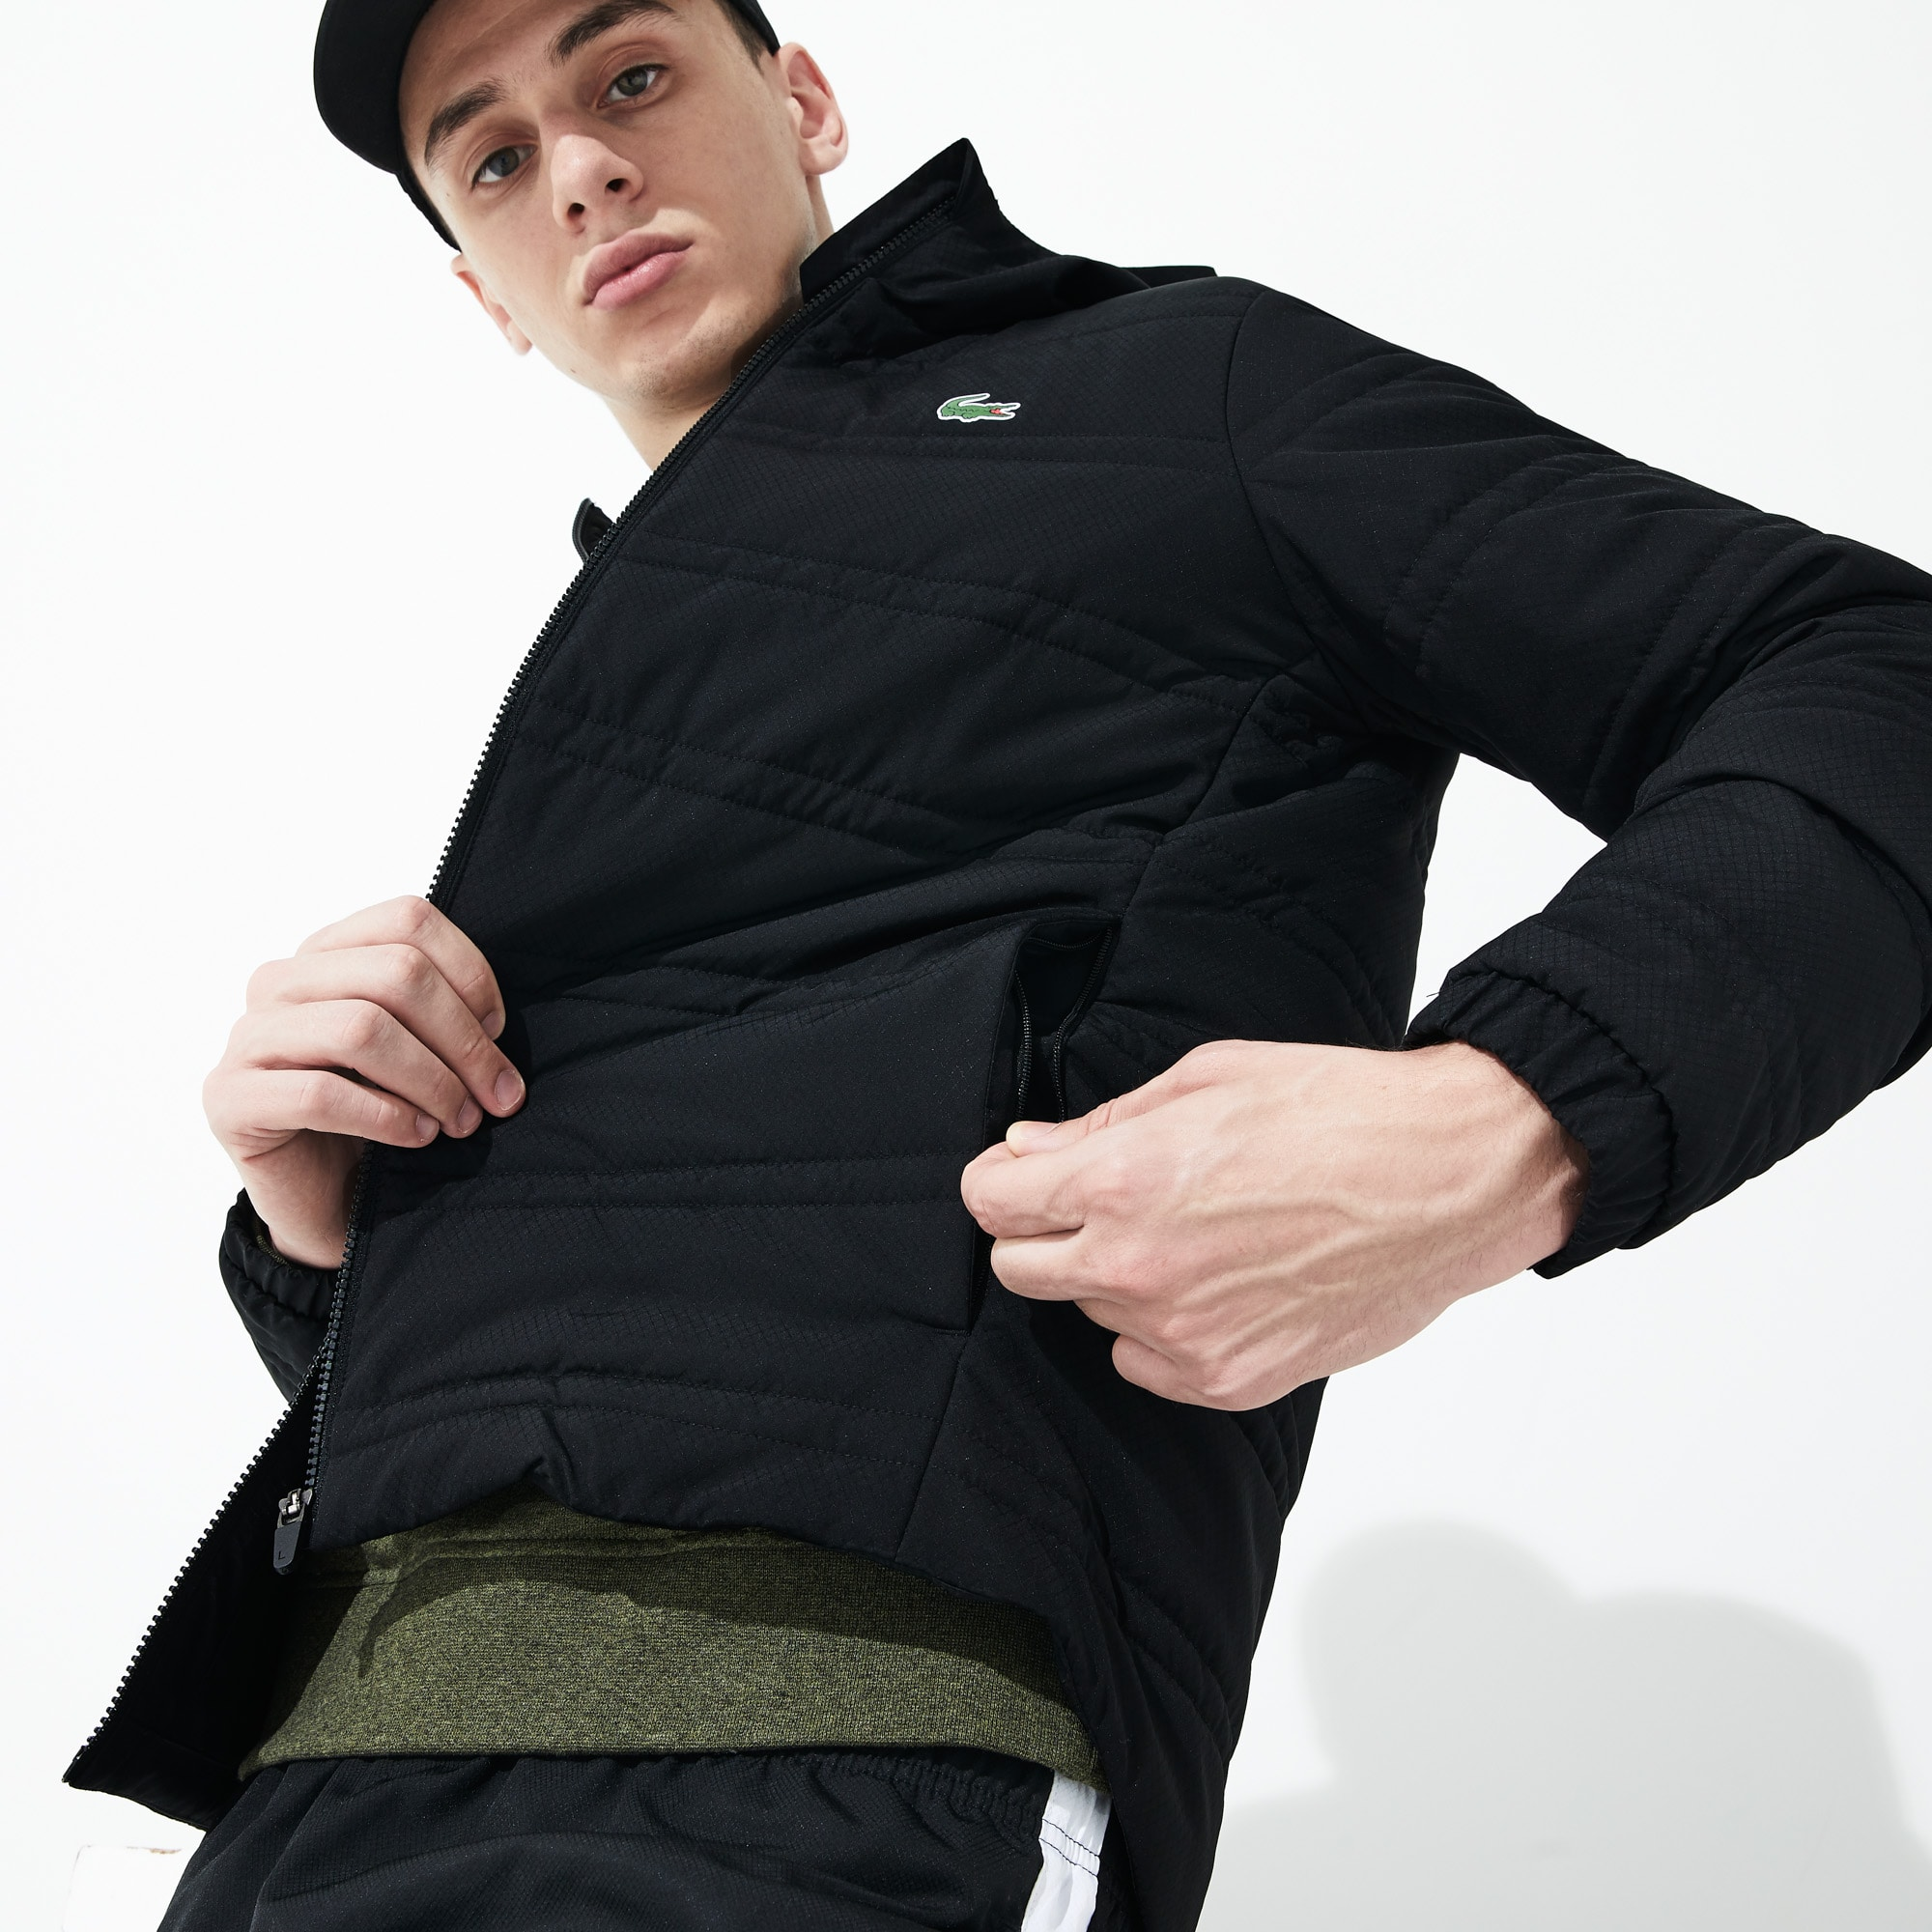 Homme Lacoste Homme Lacoste Homme BlousonsVêtements Manteauxamp; BlousonsVêtements Manteauxamp; Manteauxamp; BlousonsVêtements 6bgf7yY